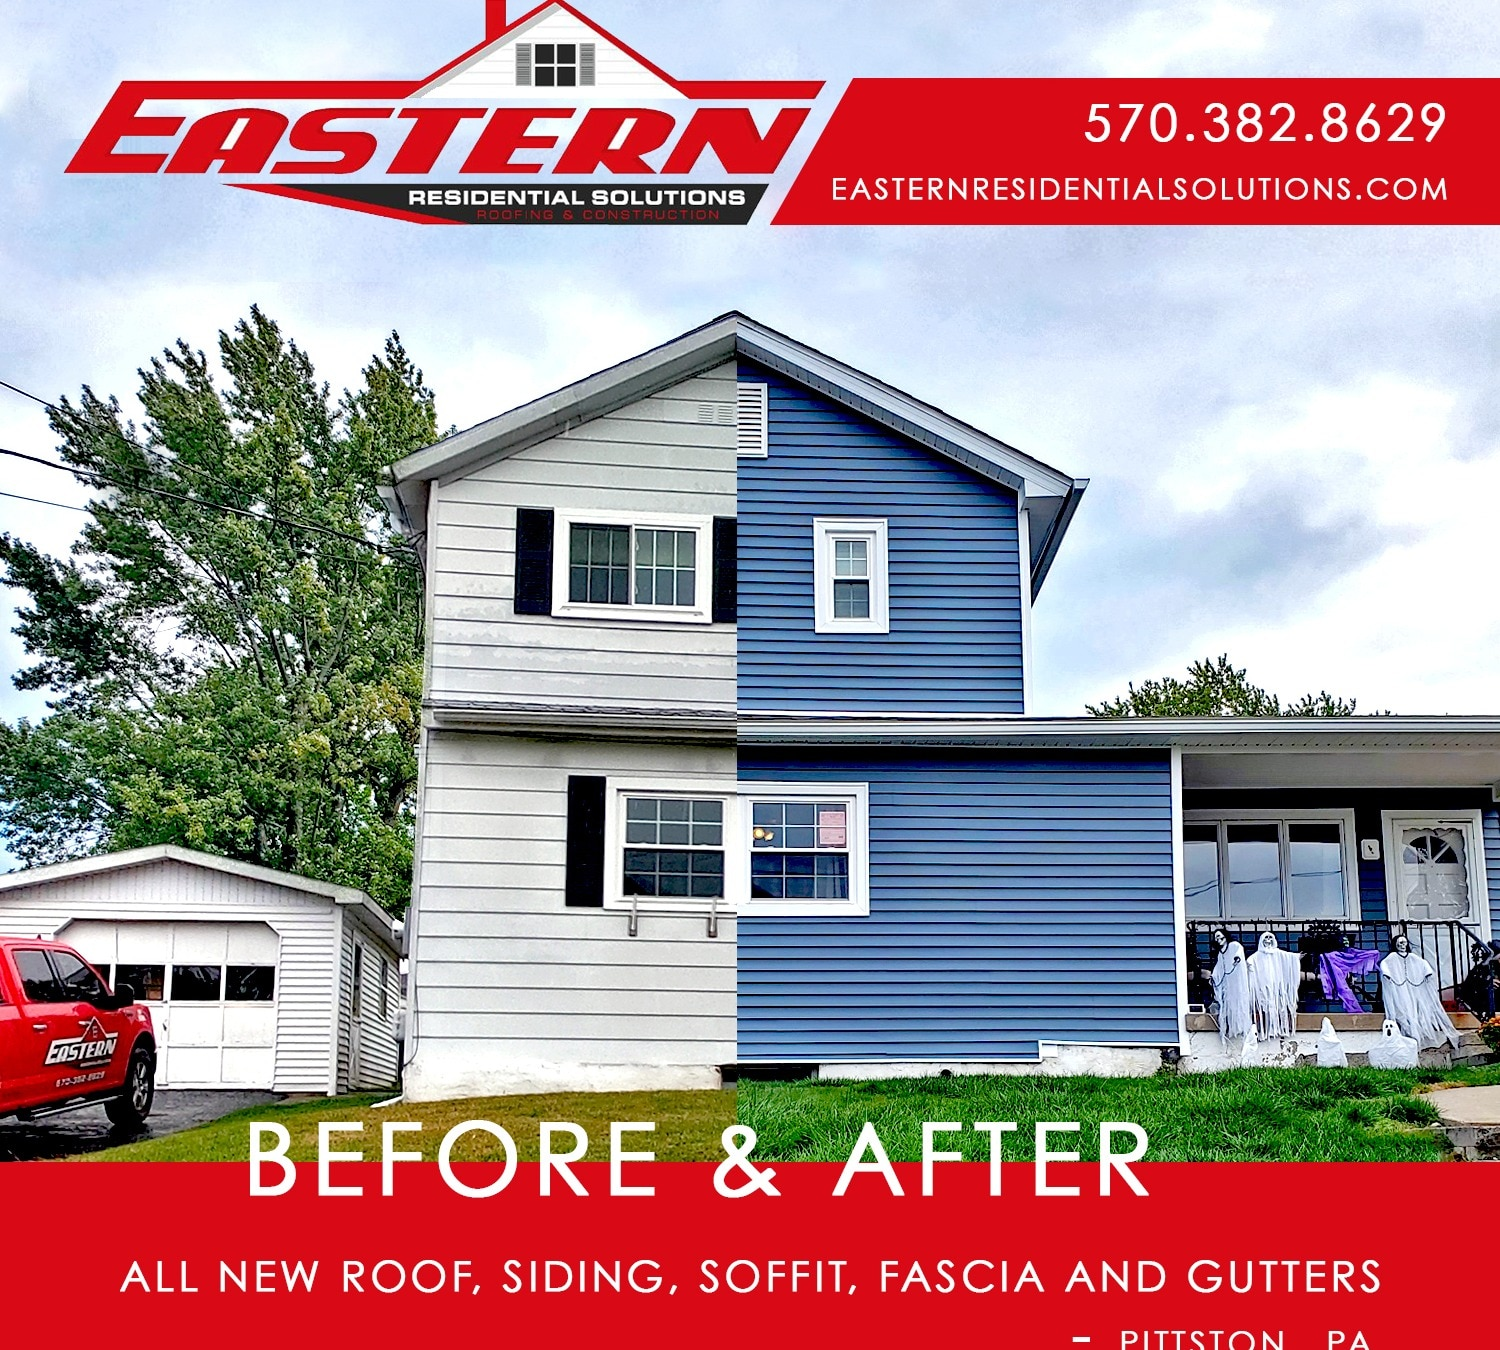 Pittston Roof, Siding, Soffit, Fascia and Gutter Replacement Project